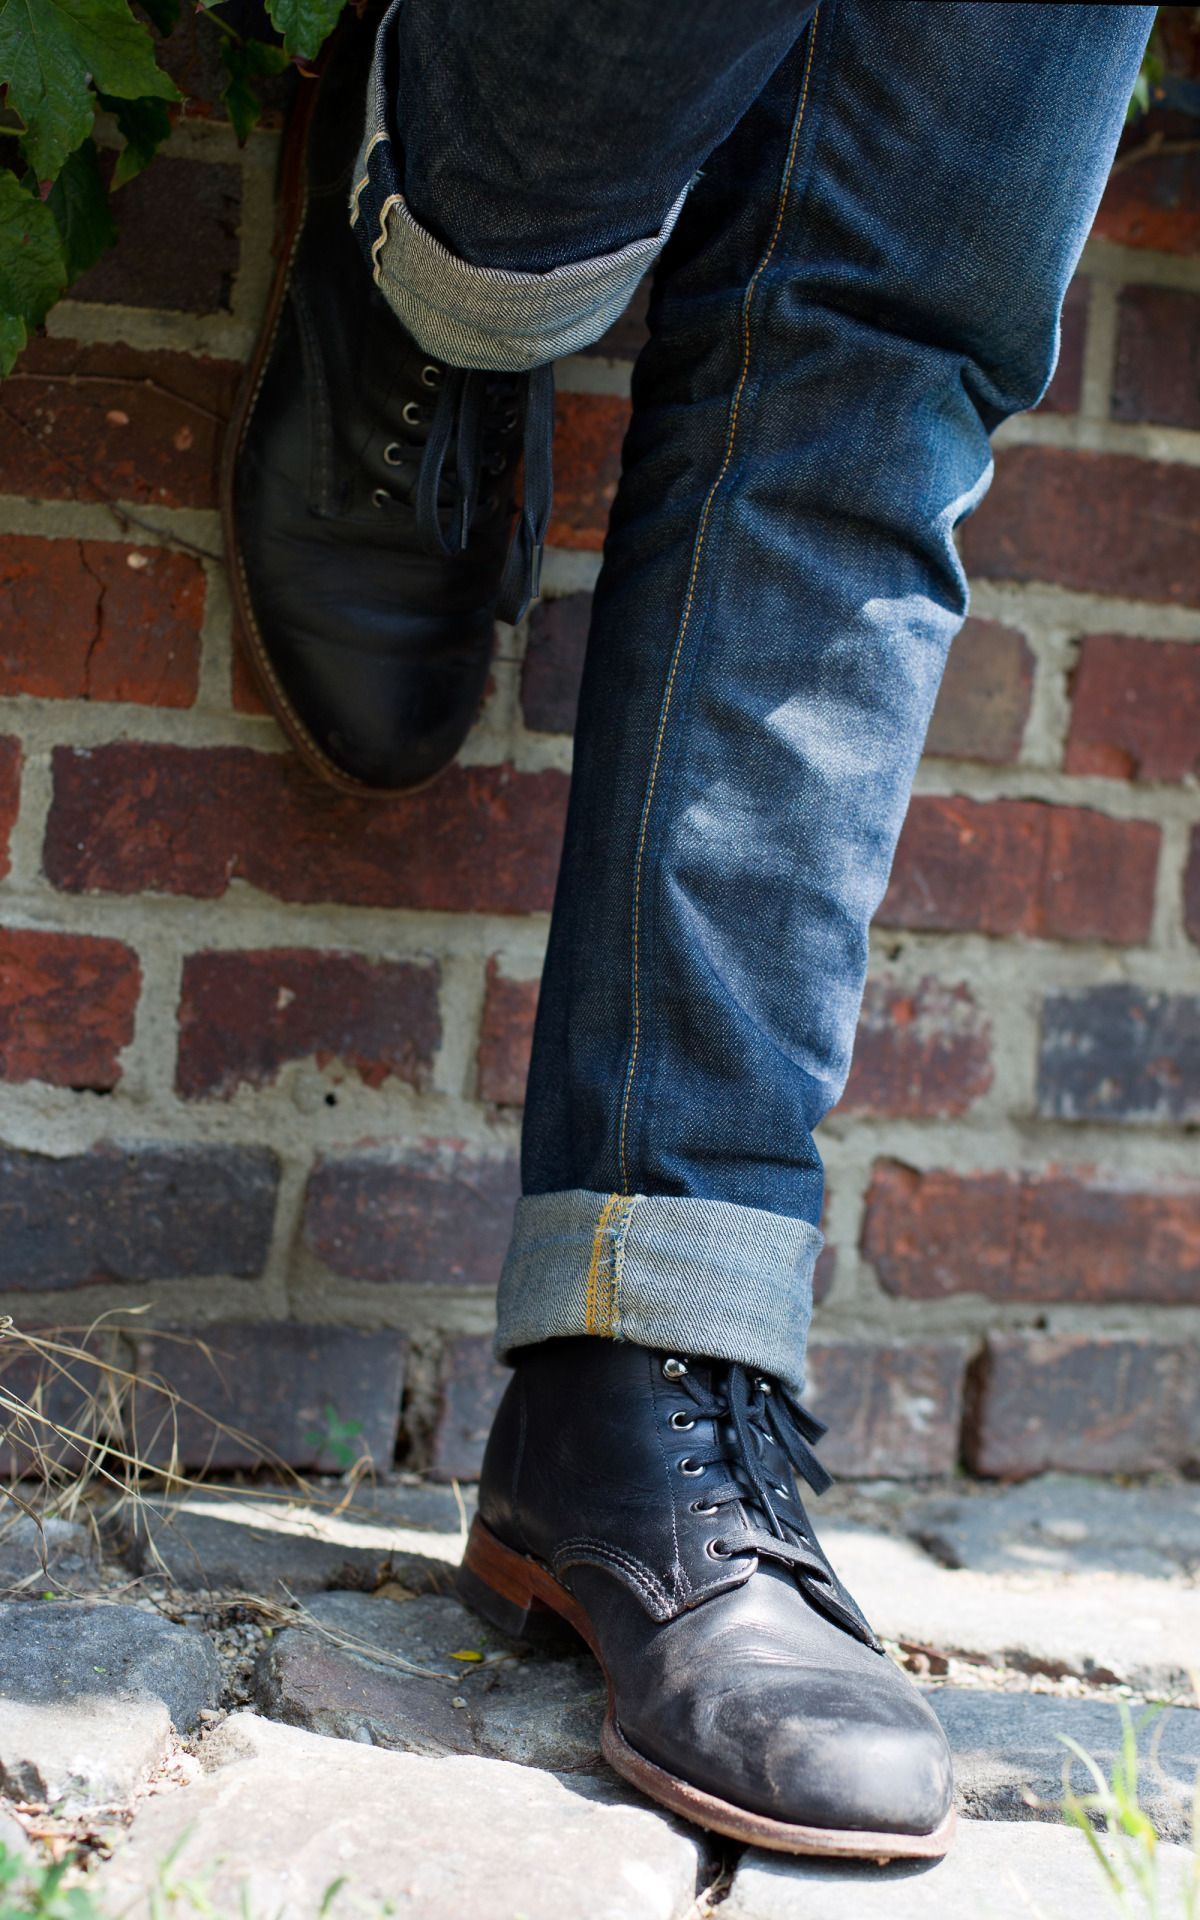 ed199ba6f79 Wolverine 1000 Mile Boots | Fashion | Wolverine 1000 mile boots ...